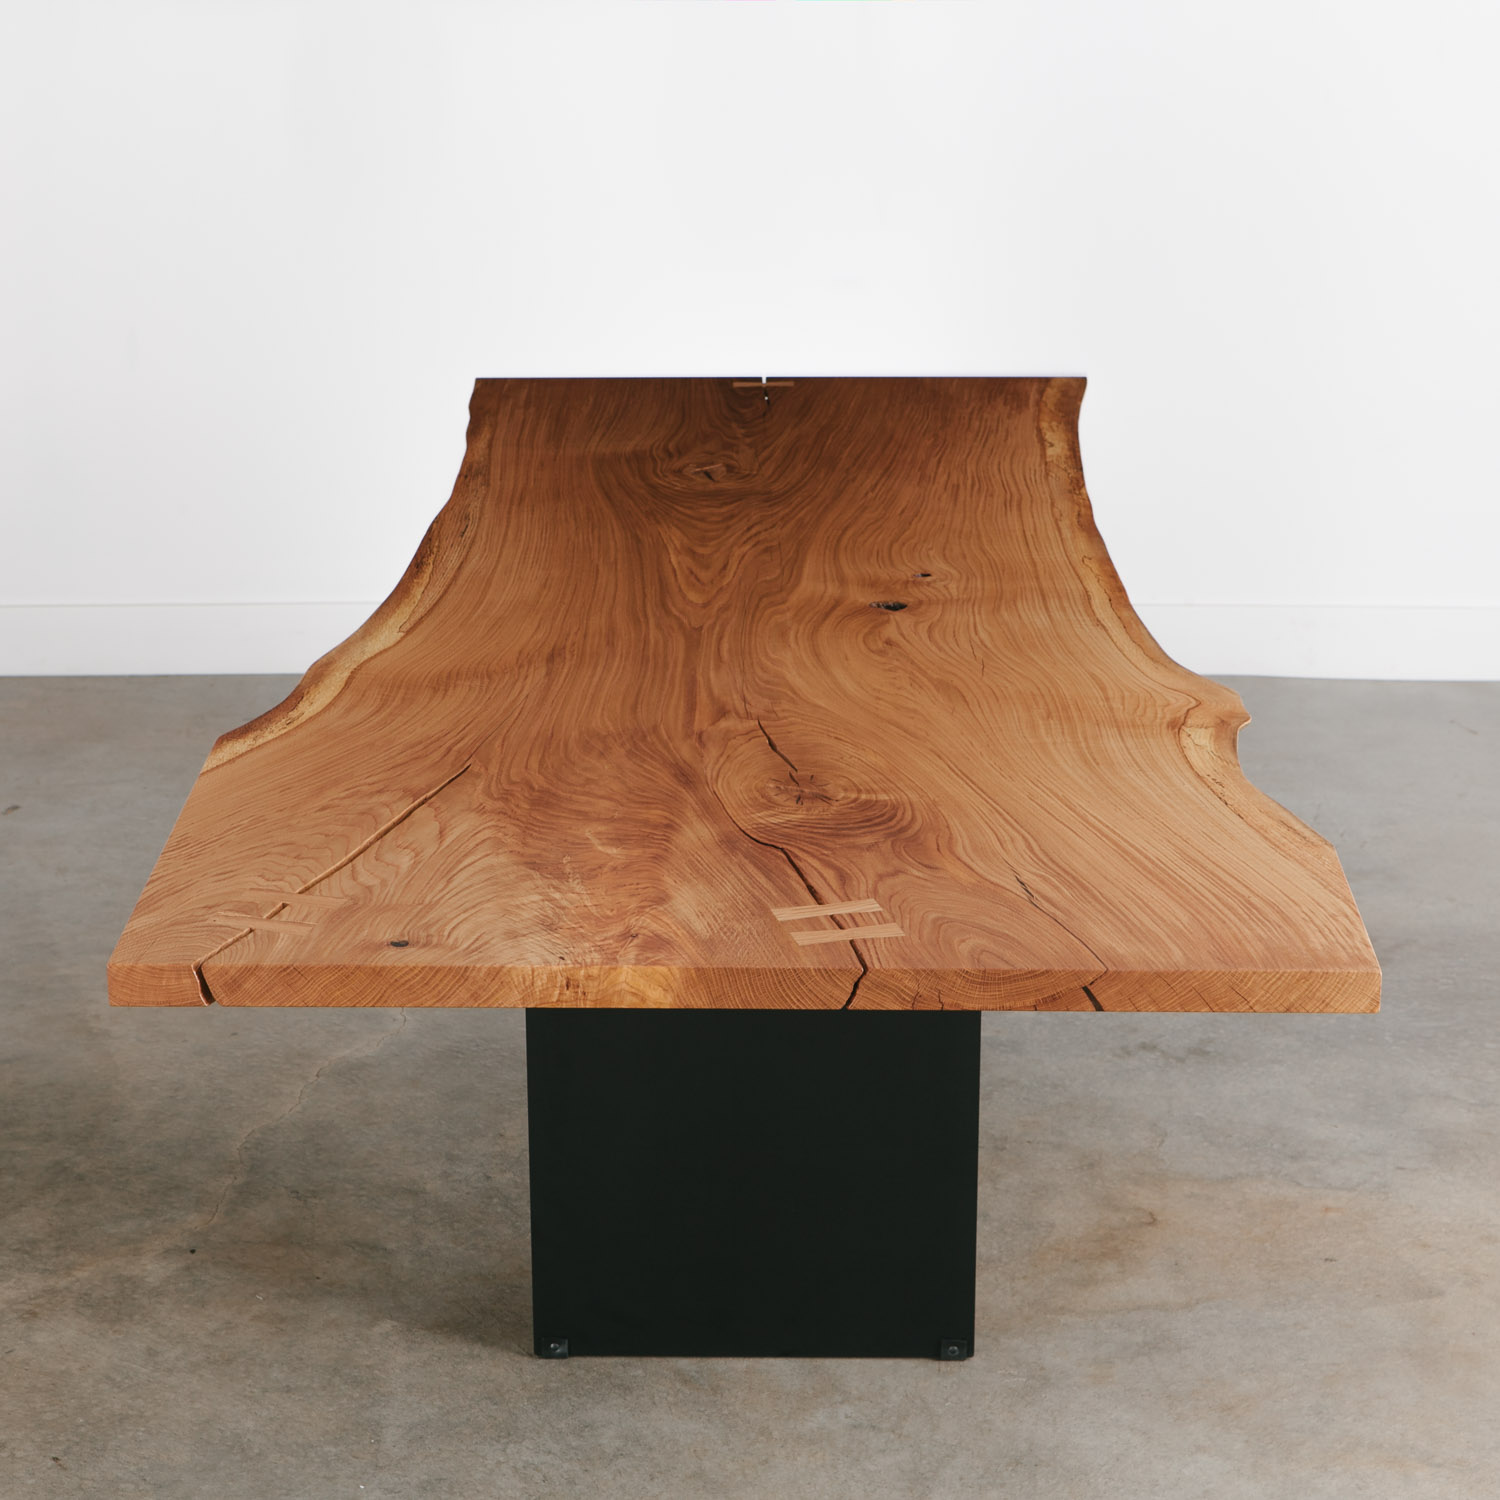 Trendy modern slab live edge dining table with black base